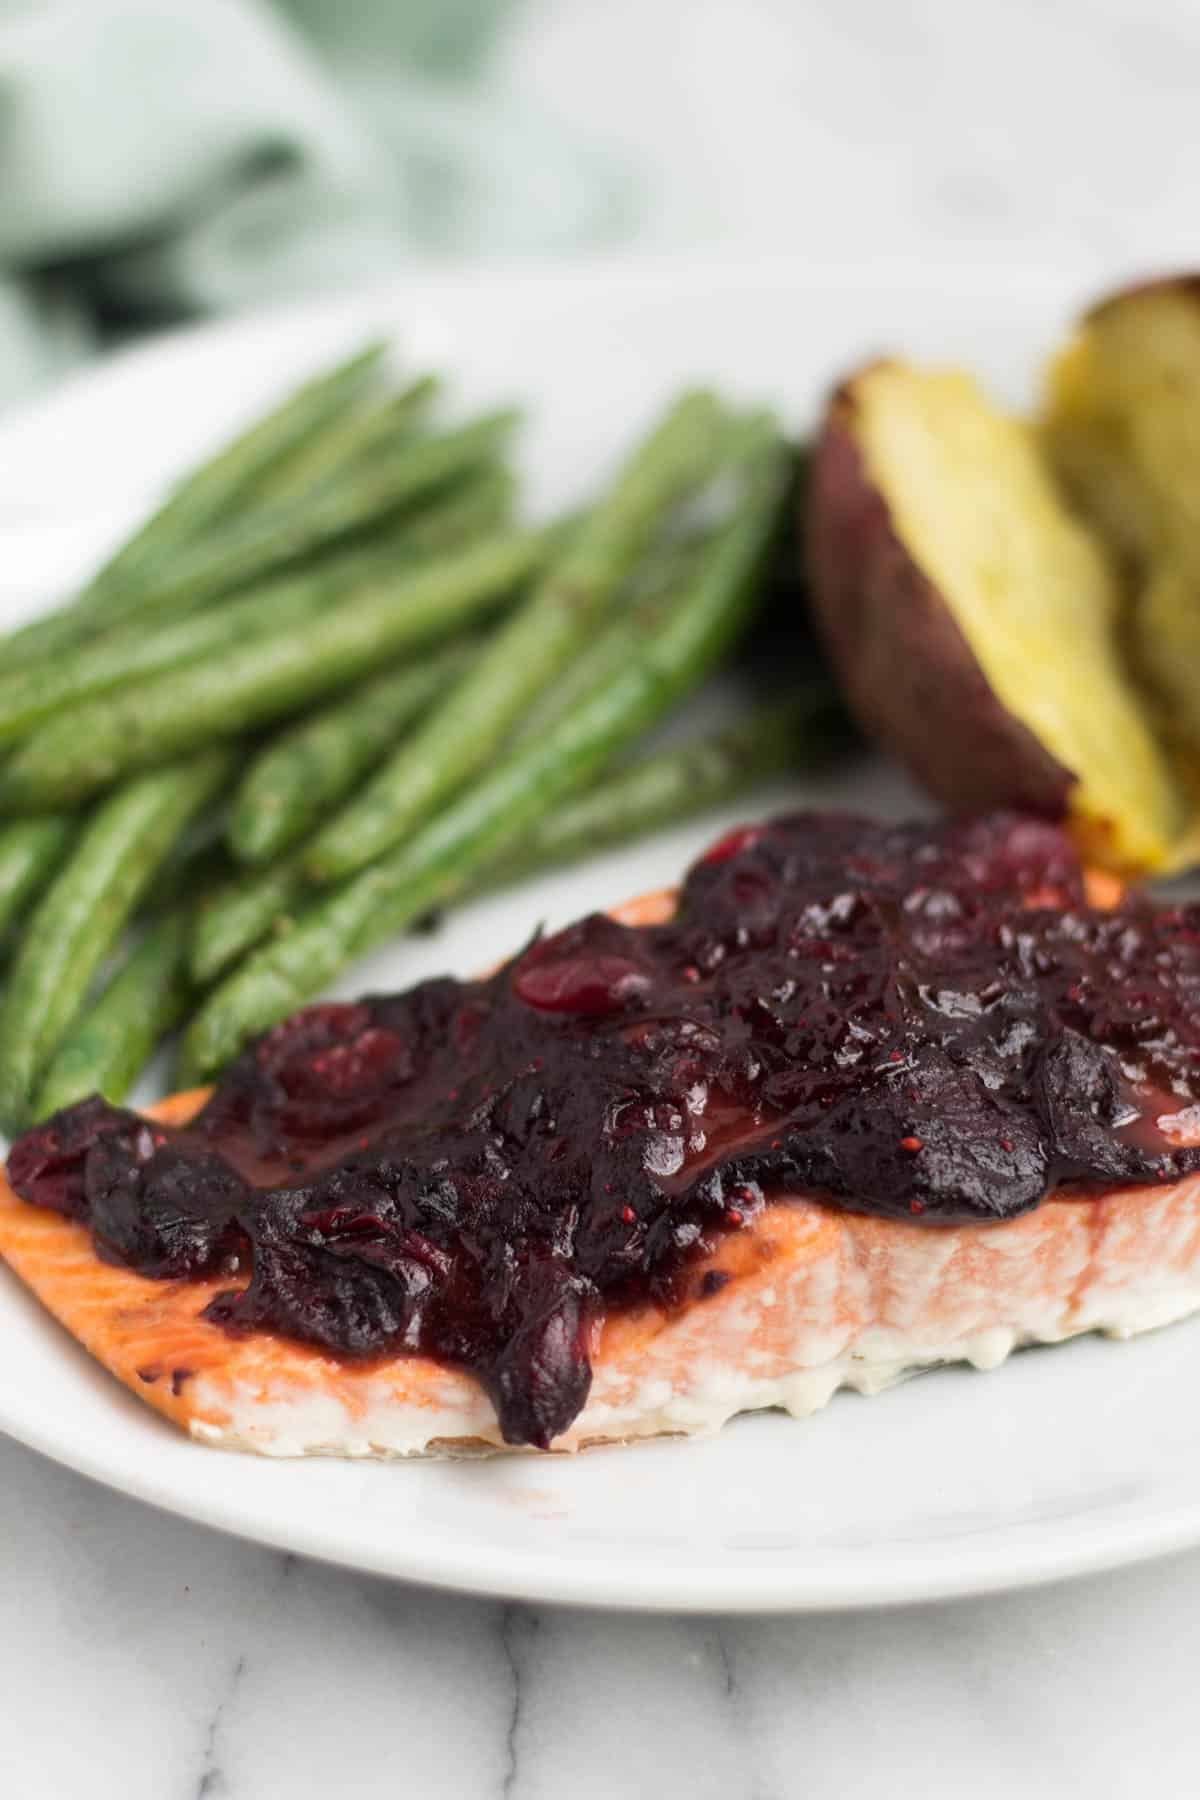 An easy and festive seafood dish, this Cranberry Balsamic Roasted Salmon takes 15 minutes and is a crowd pleaser for the holidays - paleo, gluten free, and Whole30 approved! - Eat the Gain